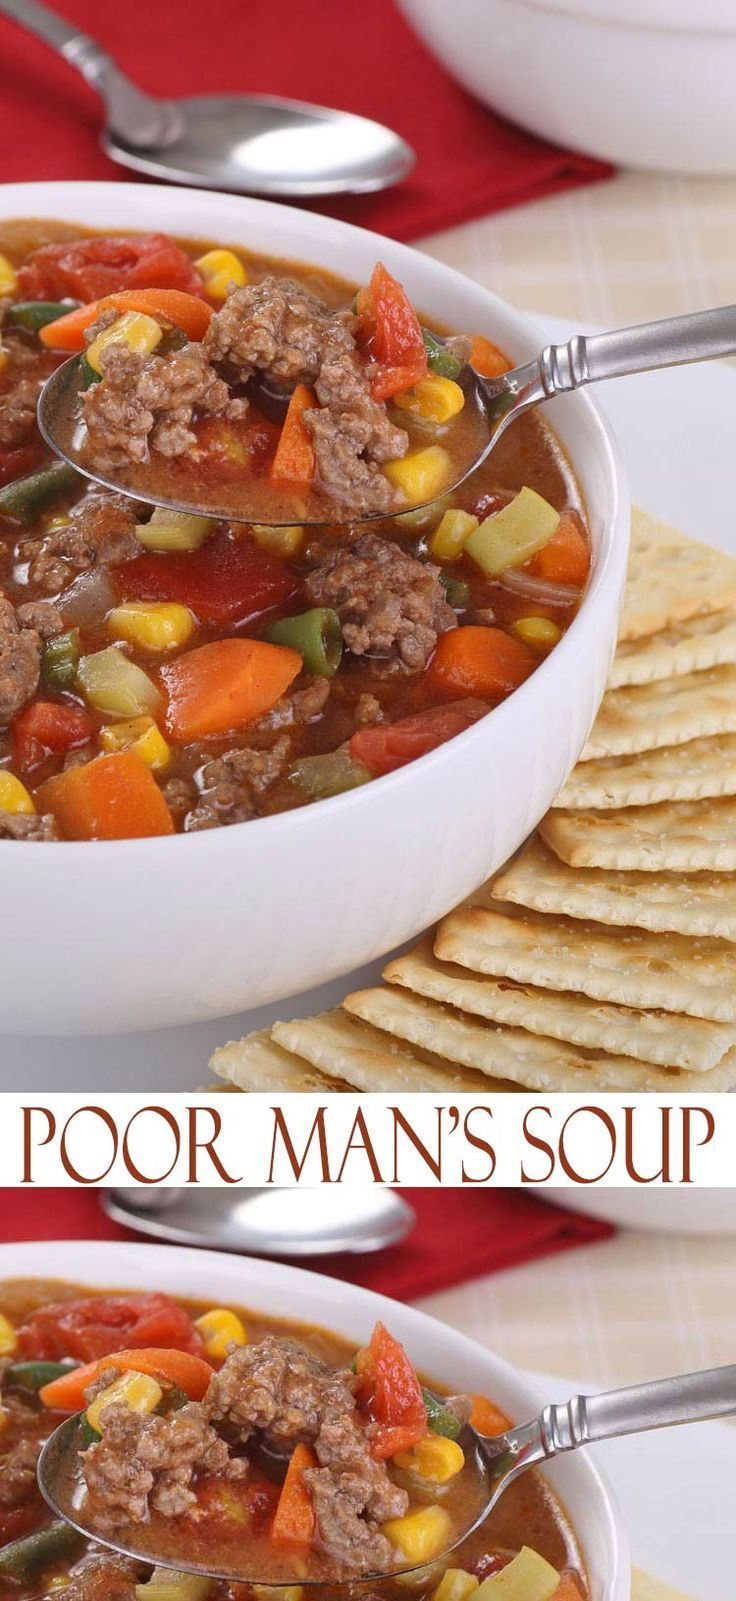 Poor Man's Soup Recipe. Poor Man's Soup - easy to make with ingredients that you probably already have at home. Feed a family on a budget with this easy soup recipe.